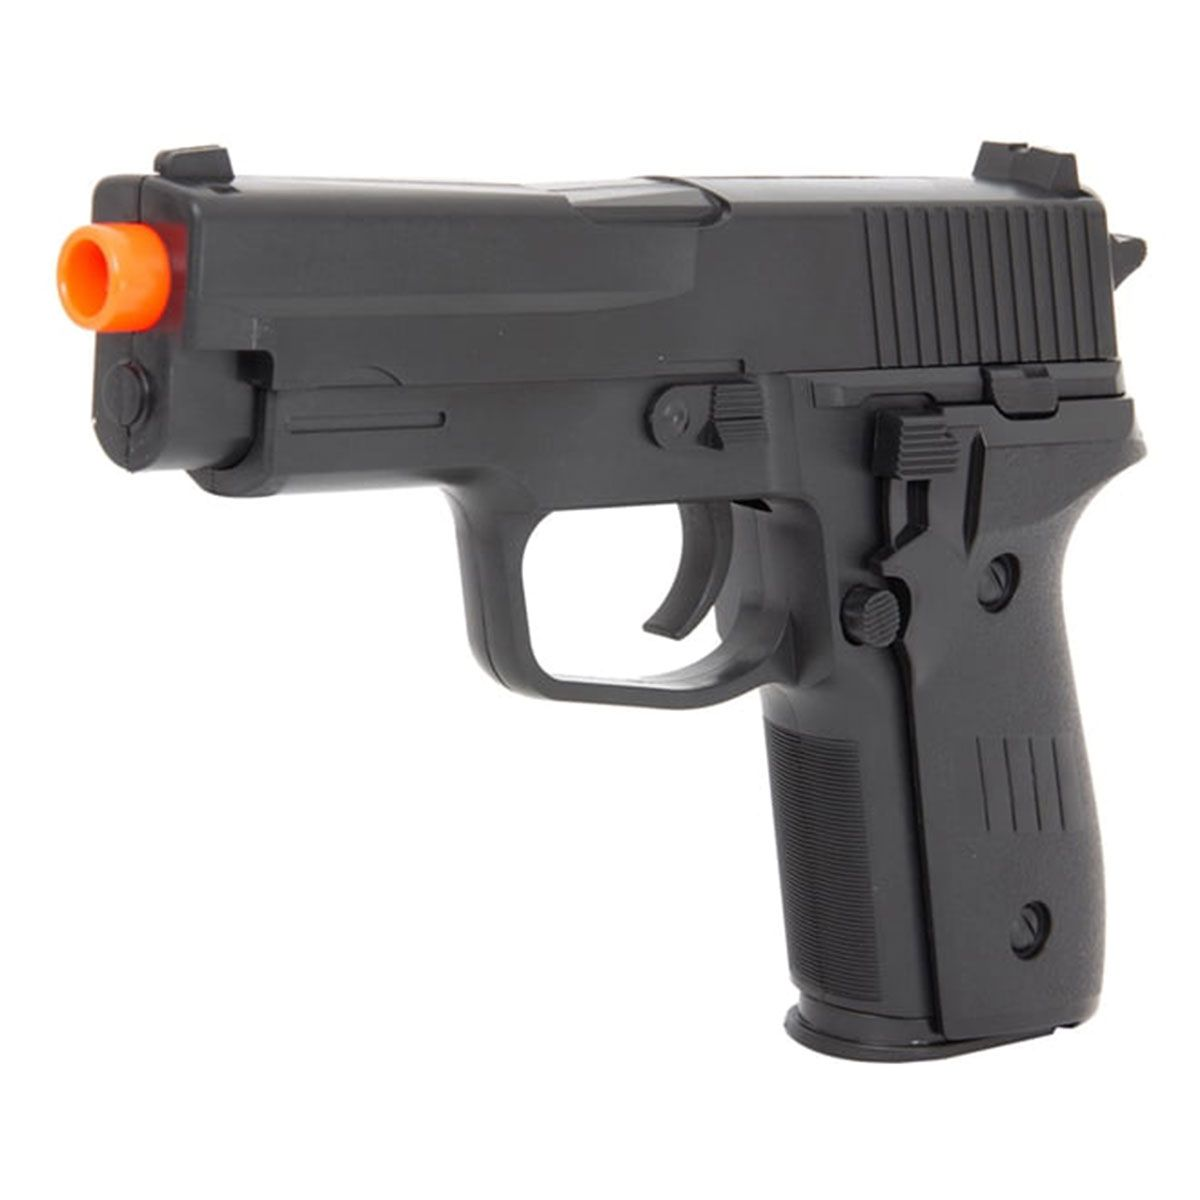 Pistola de Airsoft VG P226 2124 Mola Calibre 6mm